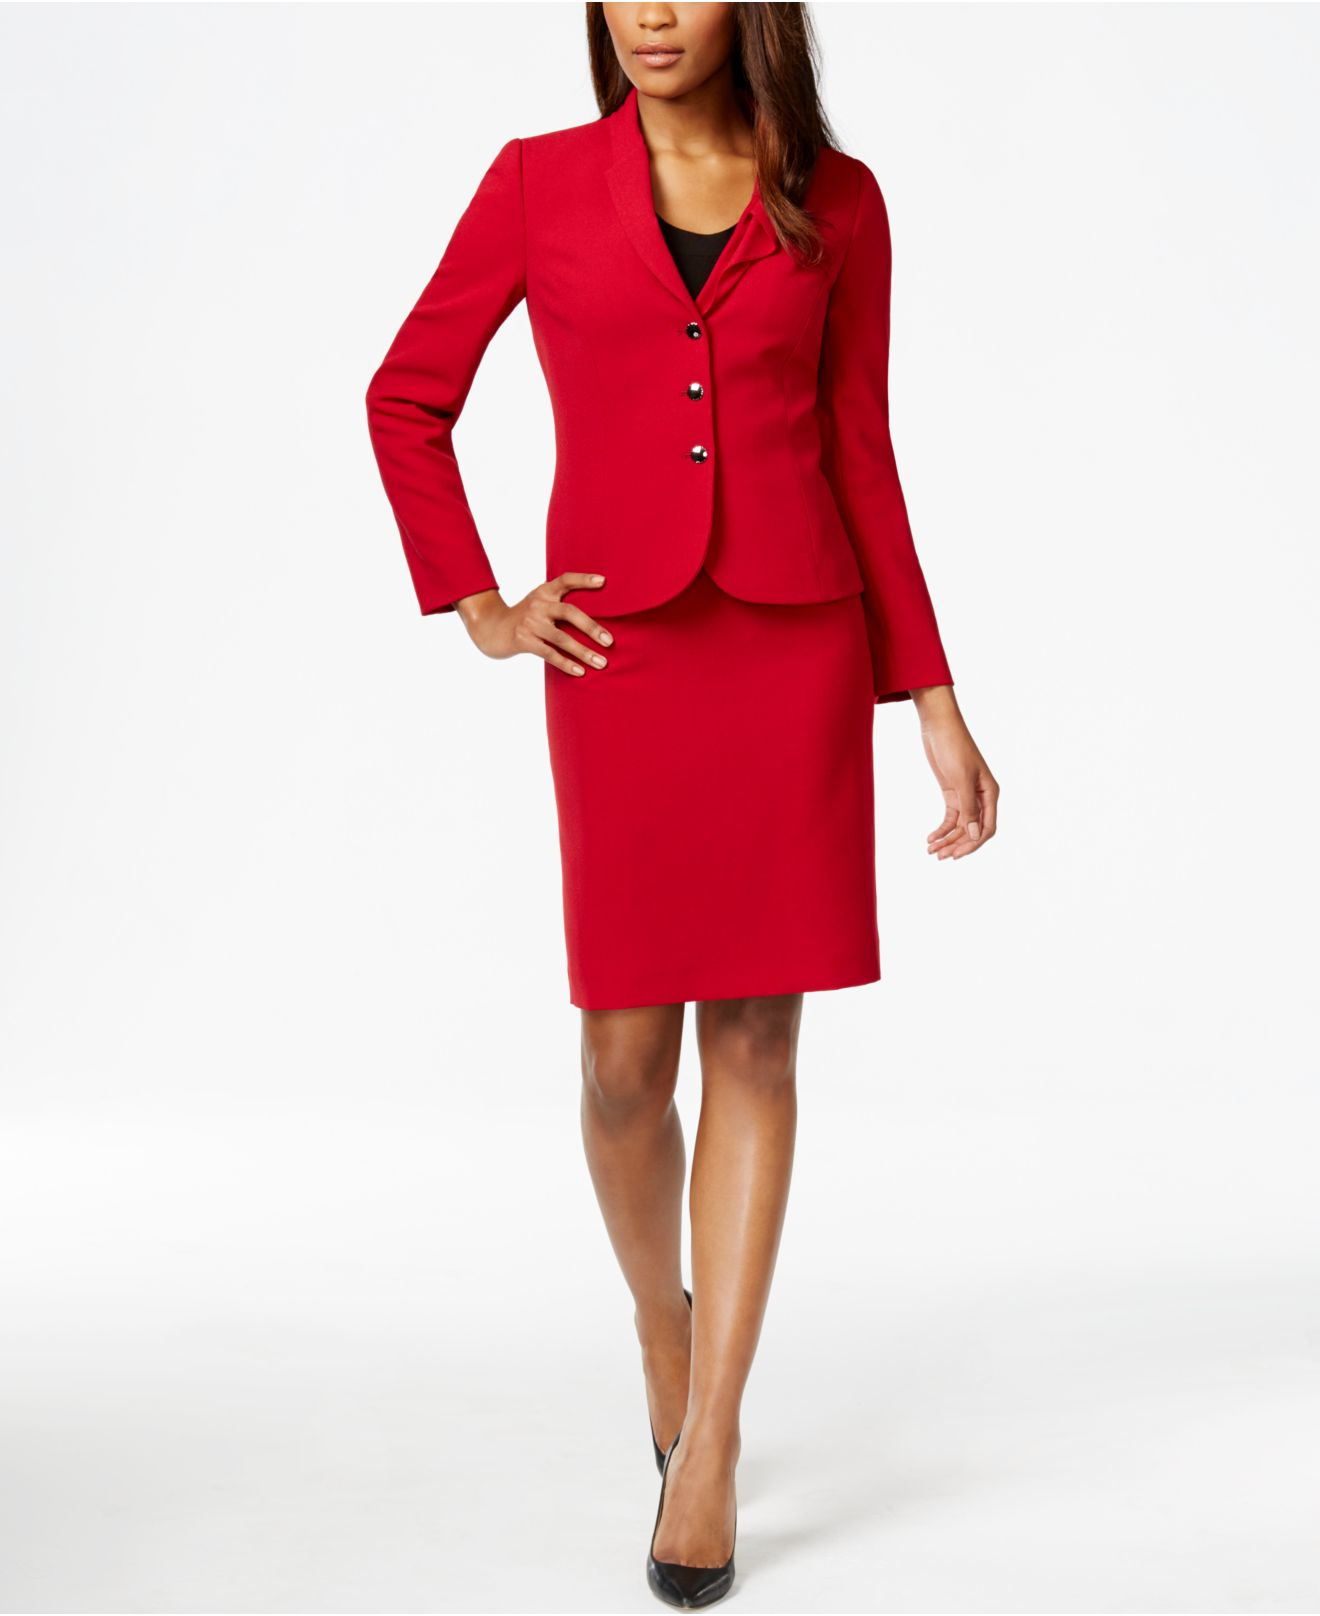 GMI GRed - Skirt Suit With Lace Trim Jacket & Double Bell Cuff Sleeves.